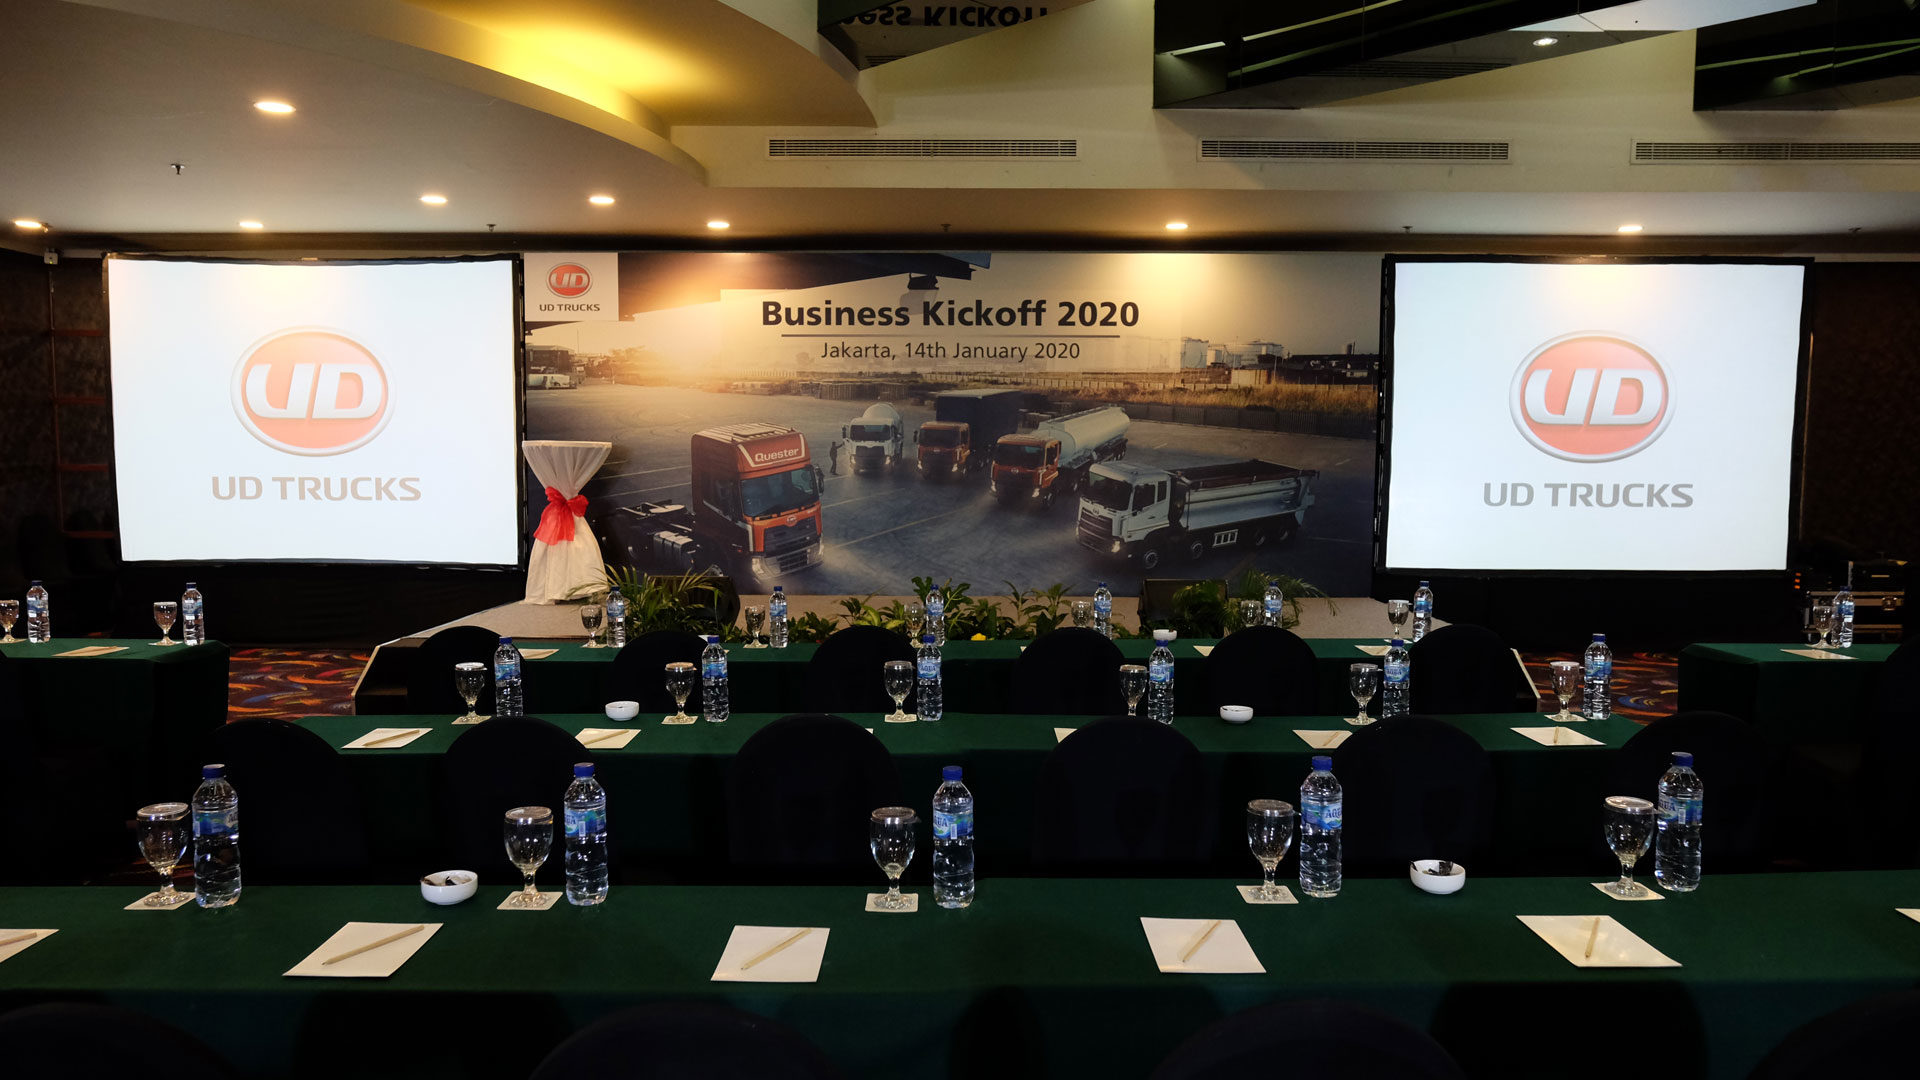 UD Trucks Kick Off Meeting – Sunlake Hotel